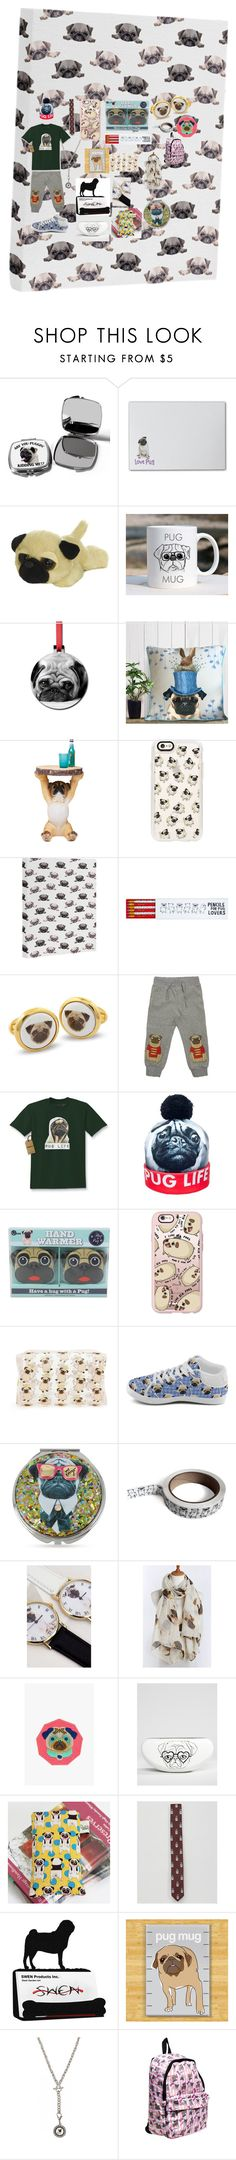 """""""Pug life"""" by sarapcr ❤ liked on Polyvore featuring interior, interiors, interior design, home, home decor, interior decorating, Casetify, DENY Designs, Ohh Deer and Halcyon Days"""